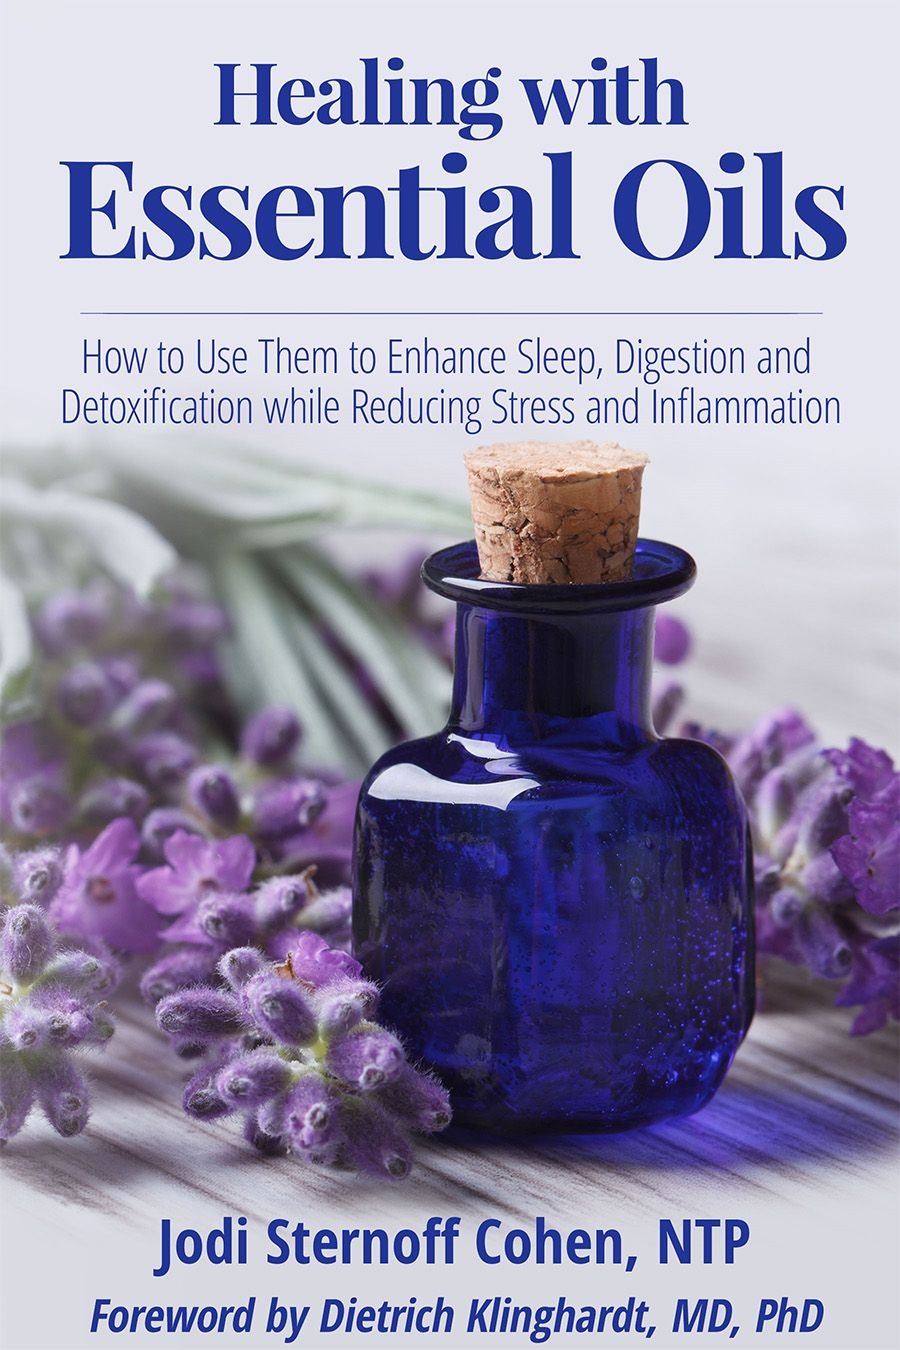 How to apply essential oils to address the root causes of chronic health issues…